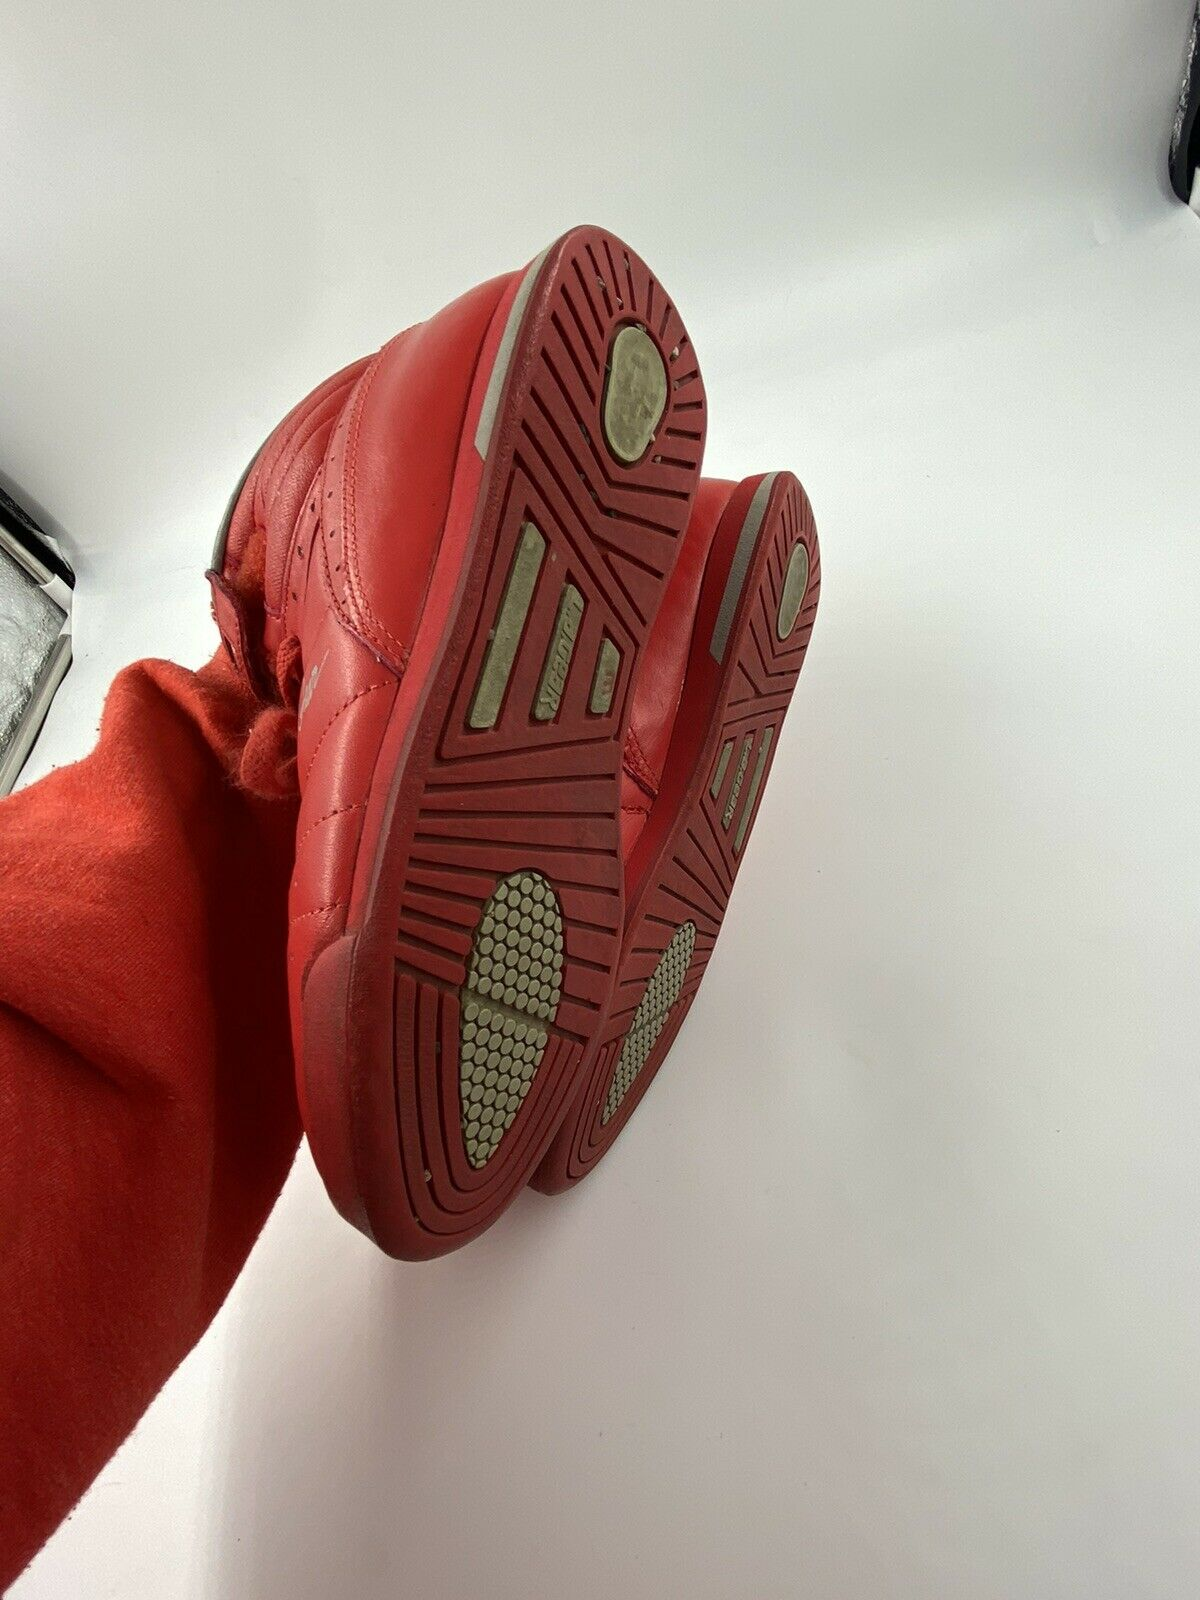 L.A. Gear 6.5 Vintage 80s Red Sneakers 90s Tennis… - image 6